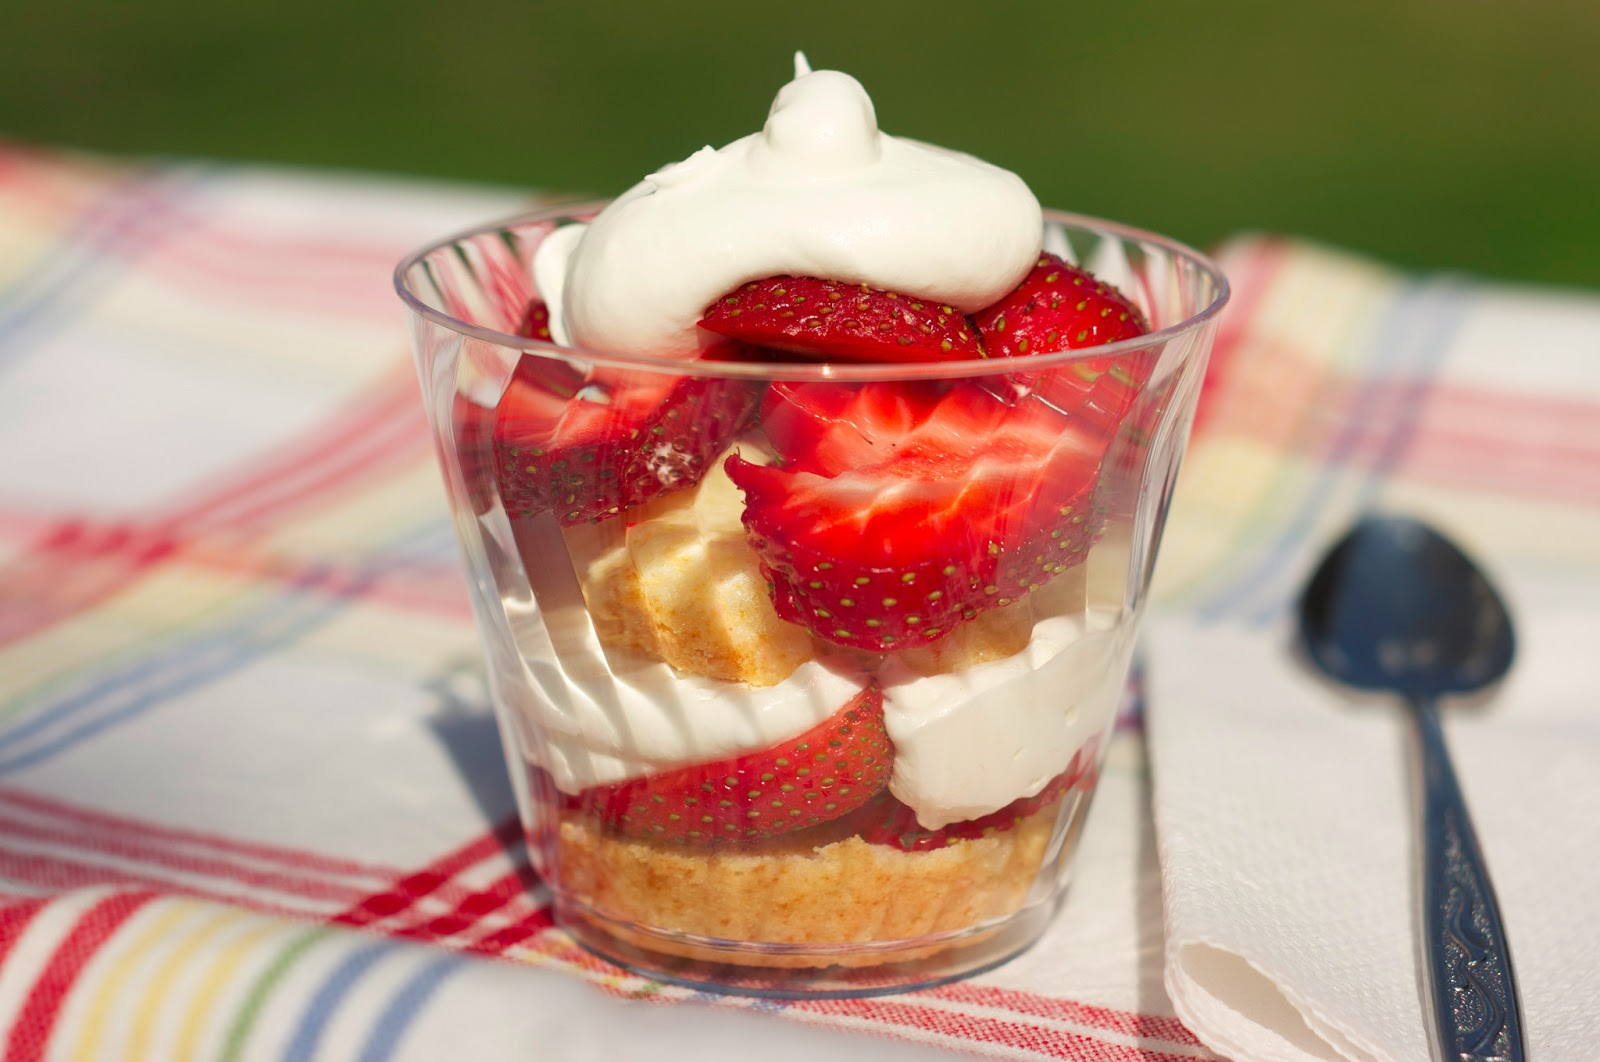 Dairy Free Strawberry Short Cake